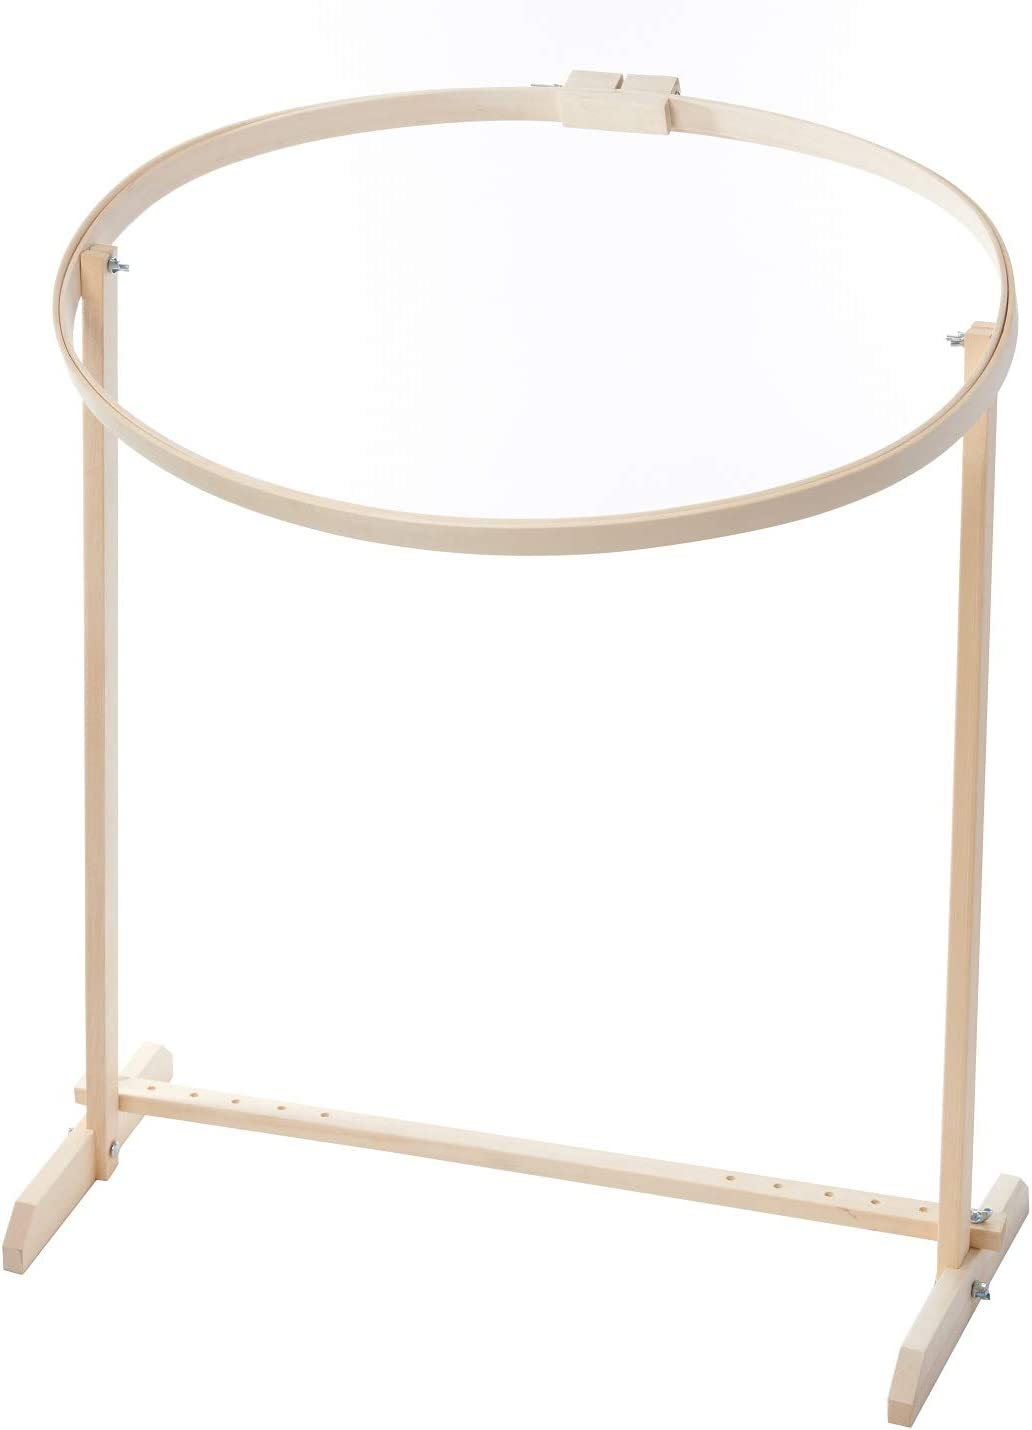 Amish Oak Wood Swivel 22 Quilting Hoop with Stand